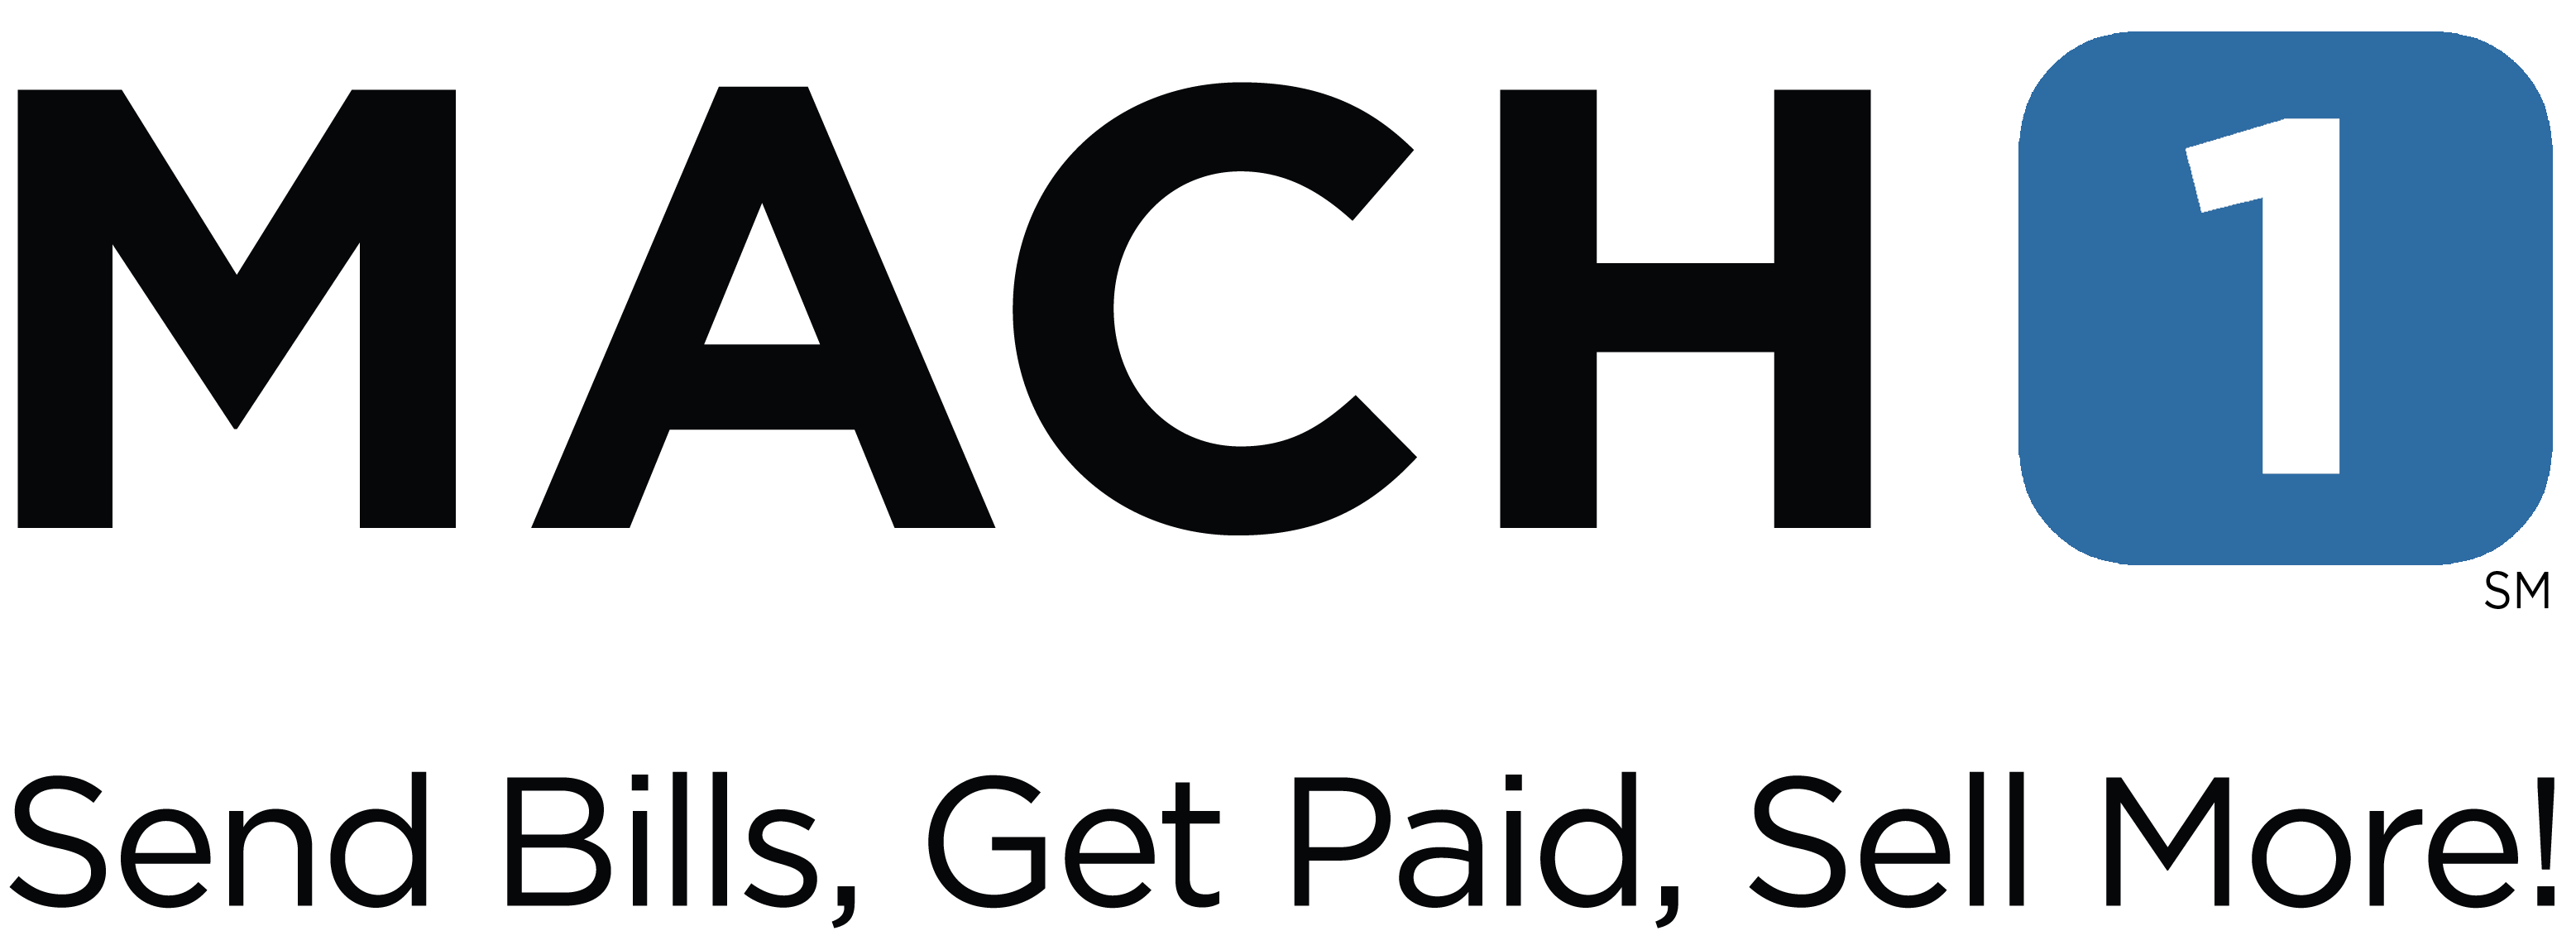 MACH1 logo and link to MACH1 website.